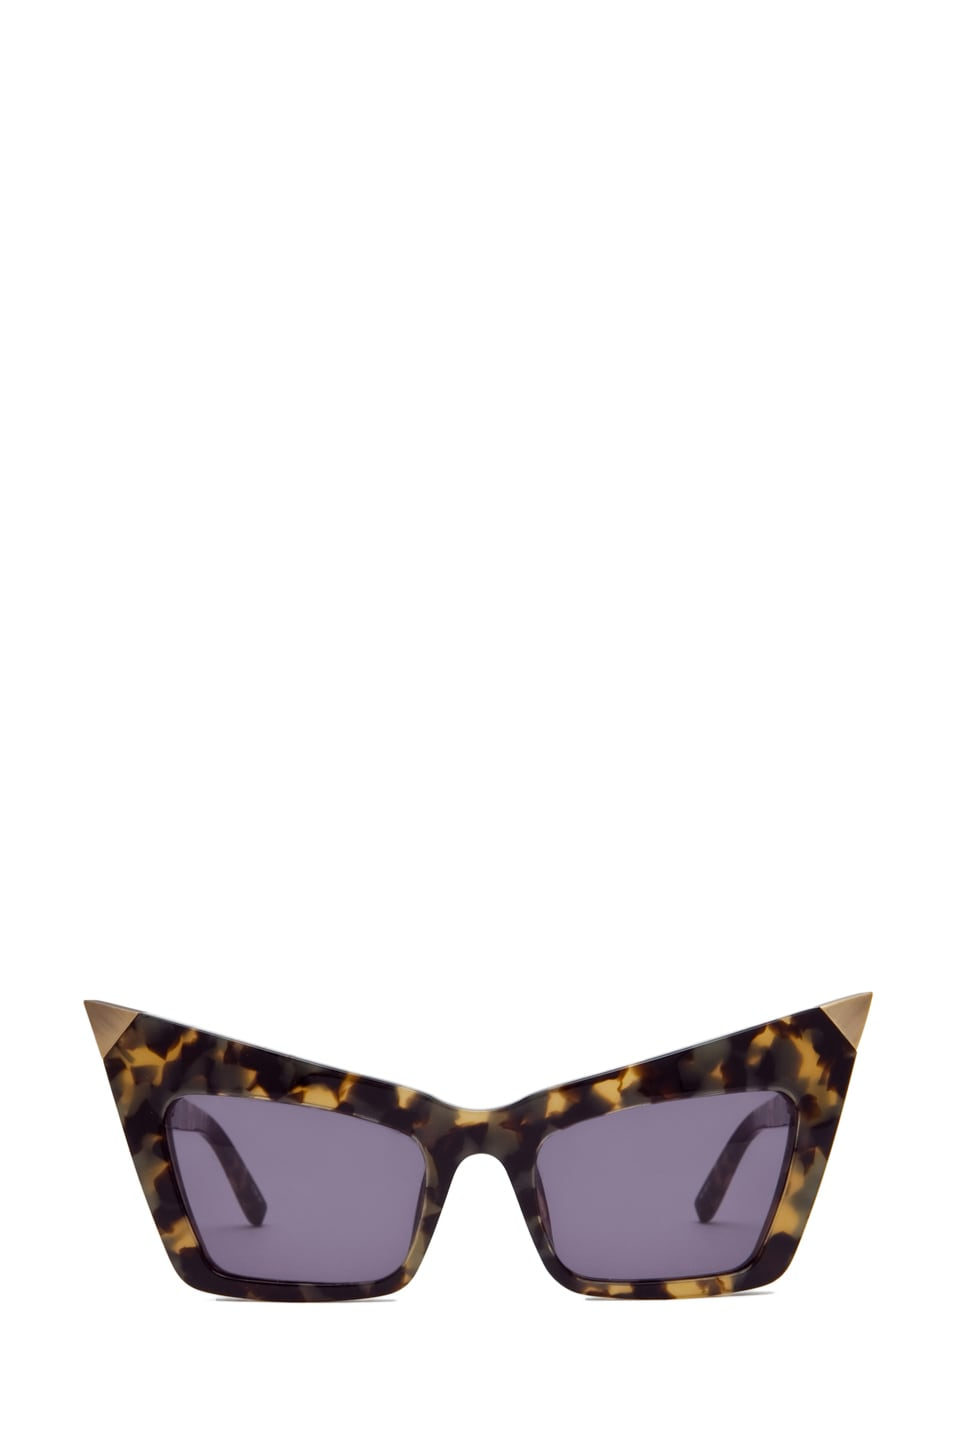 Image 1 of Alexander Wang Cat Eye Sunglasses/Antique Gold in T-Shell